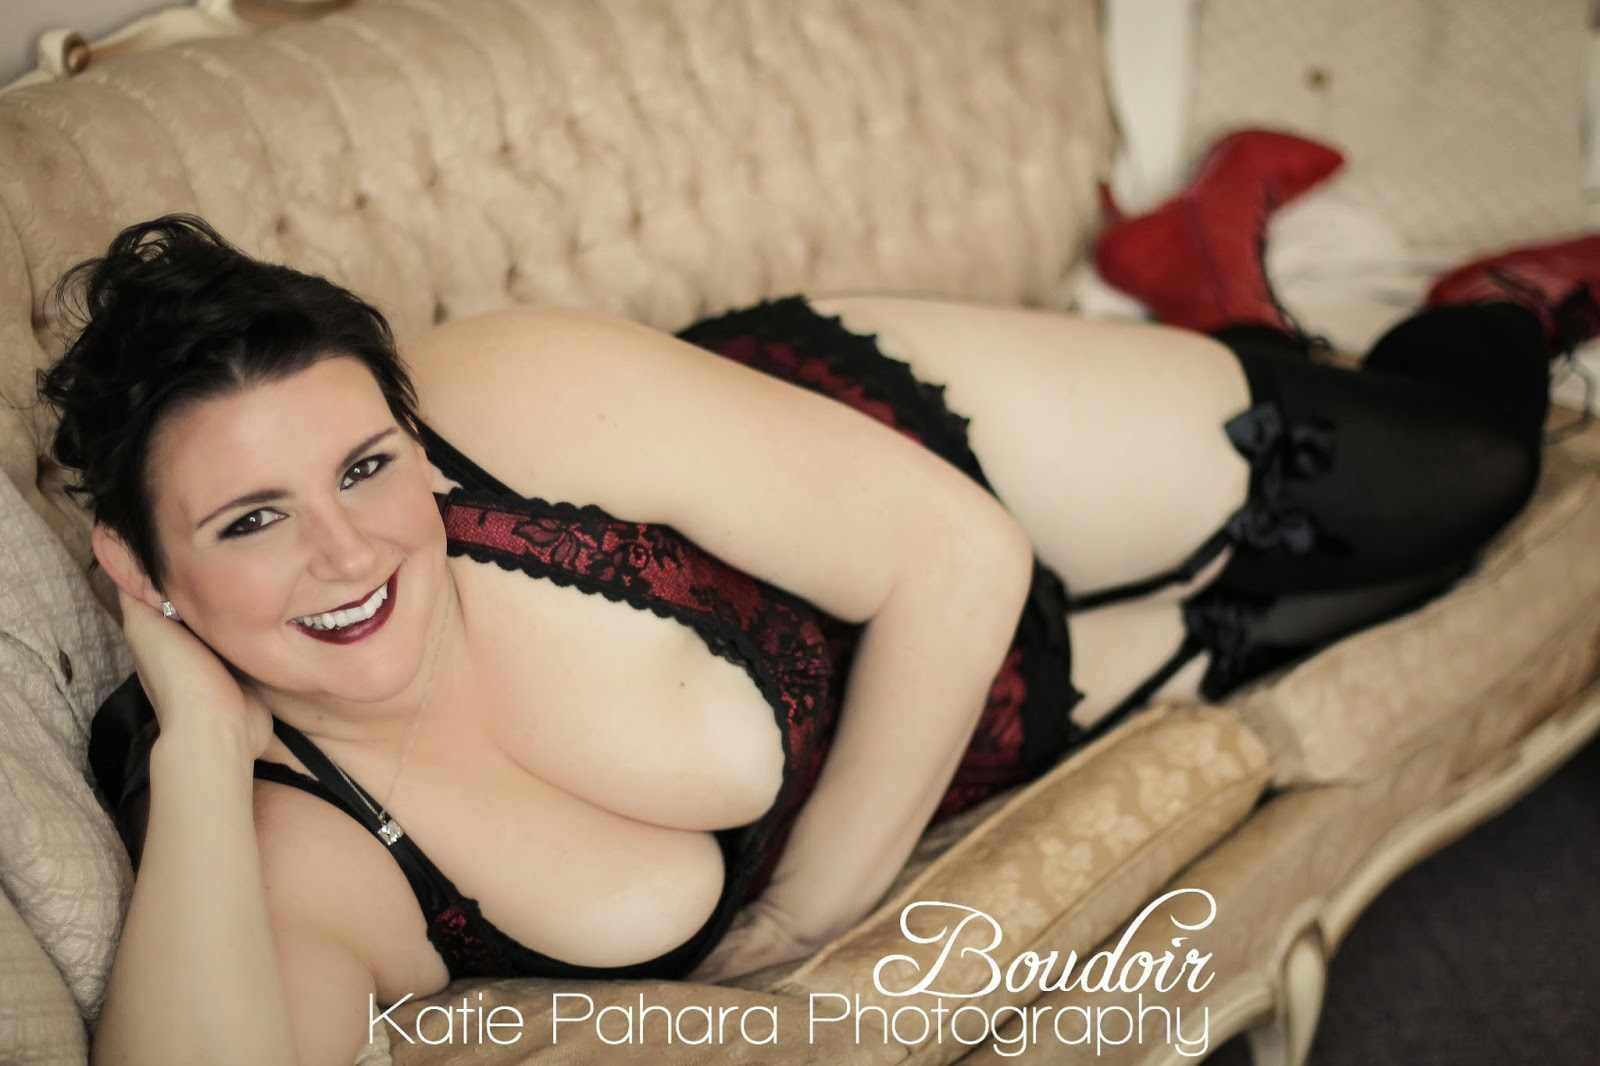 Boudoir Photography Lethbridge Katie Pahara Photography